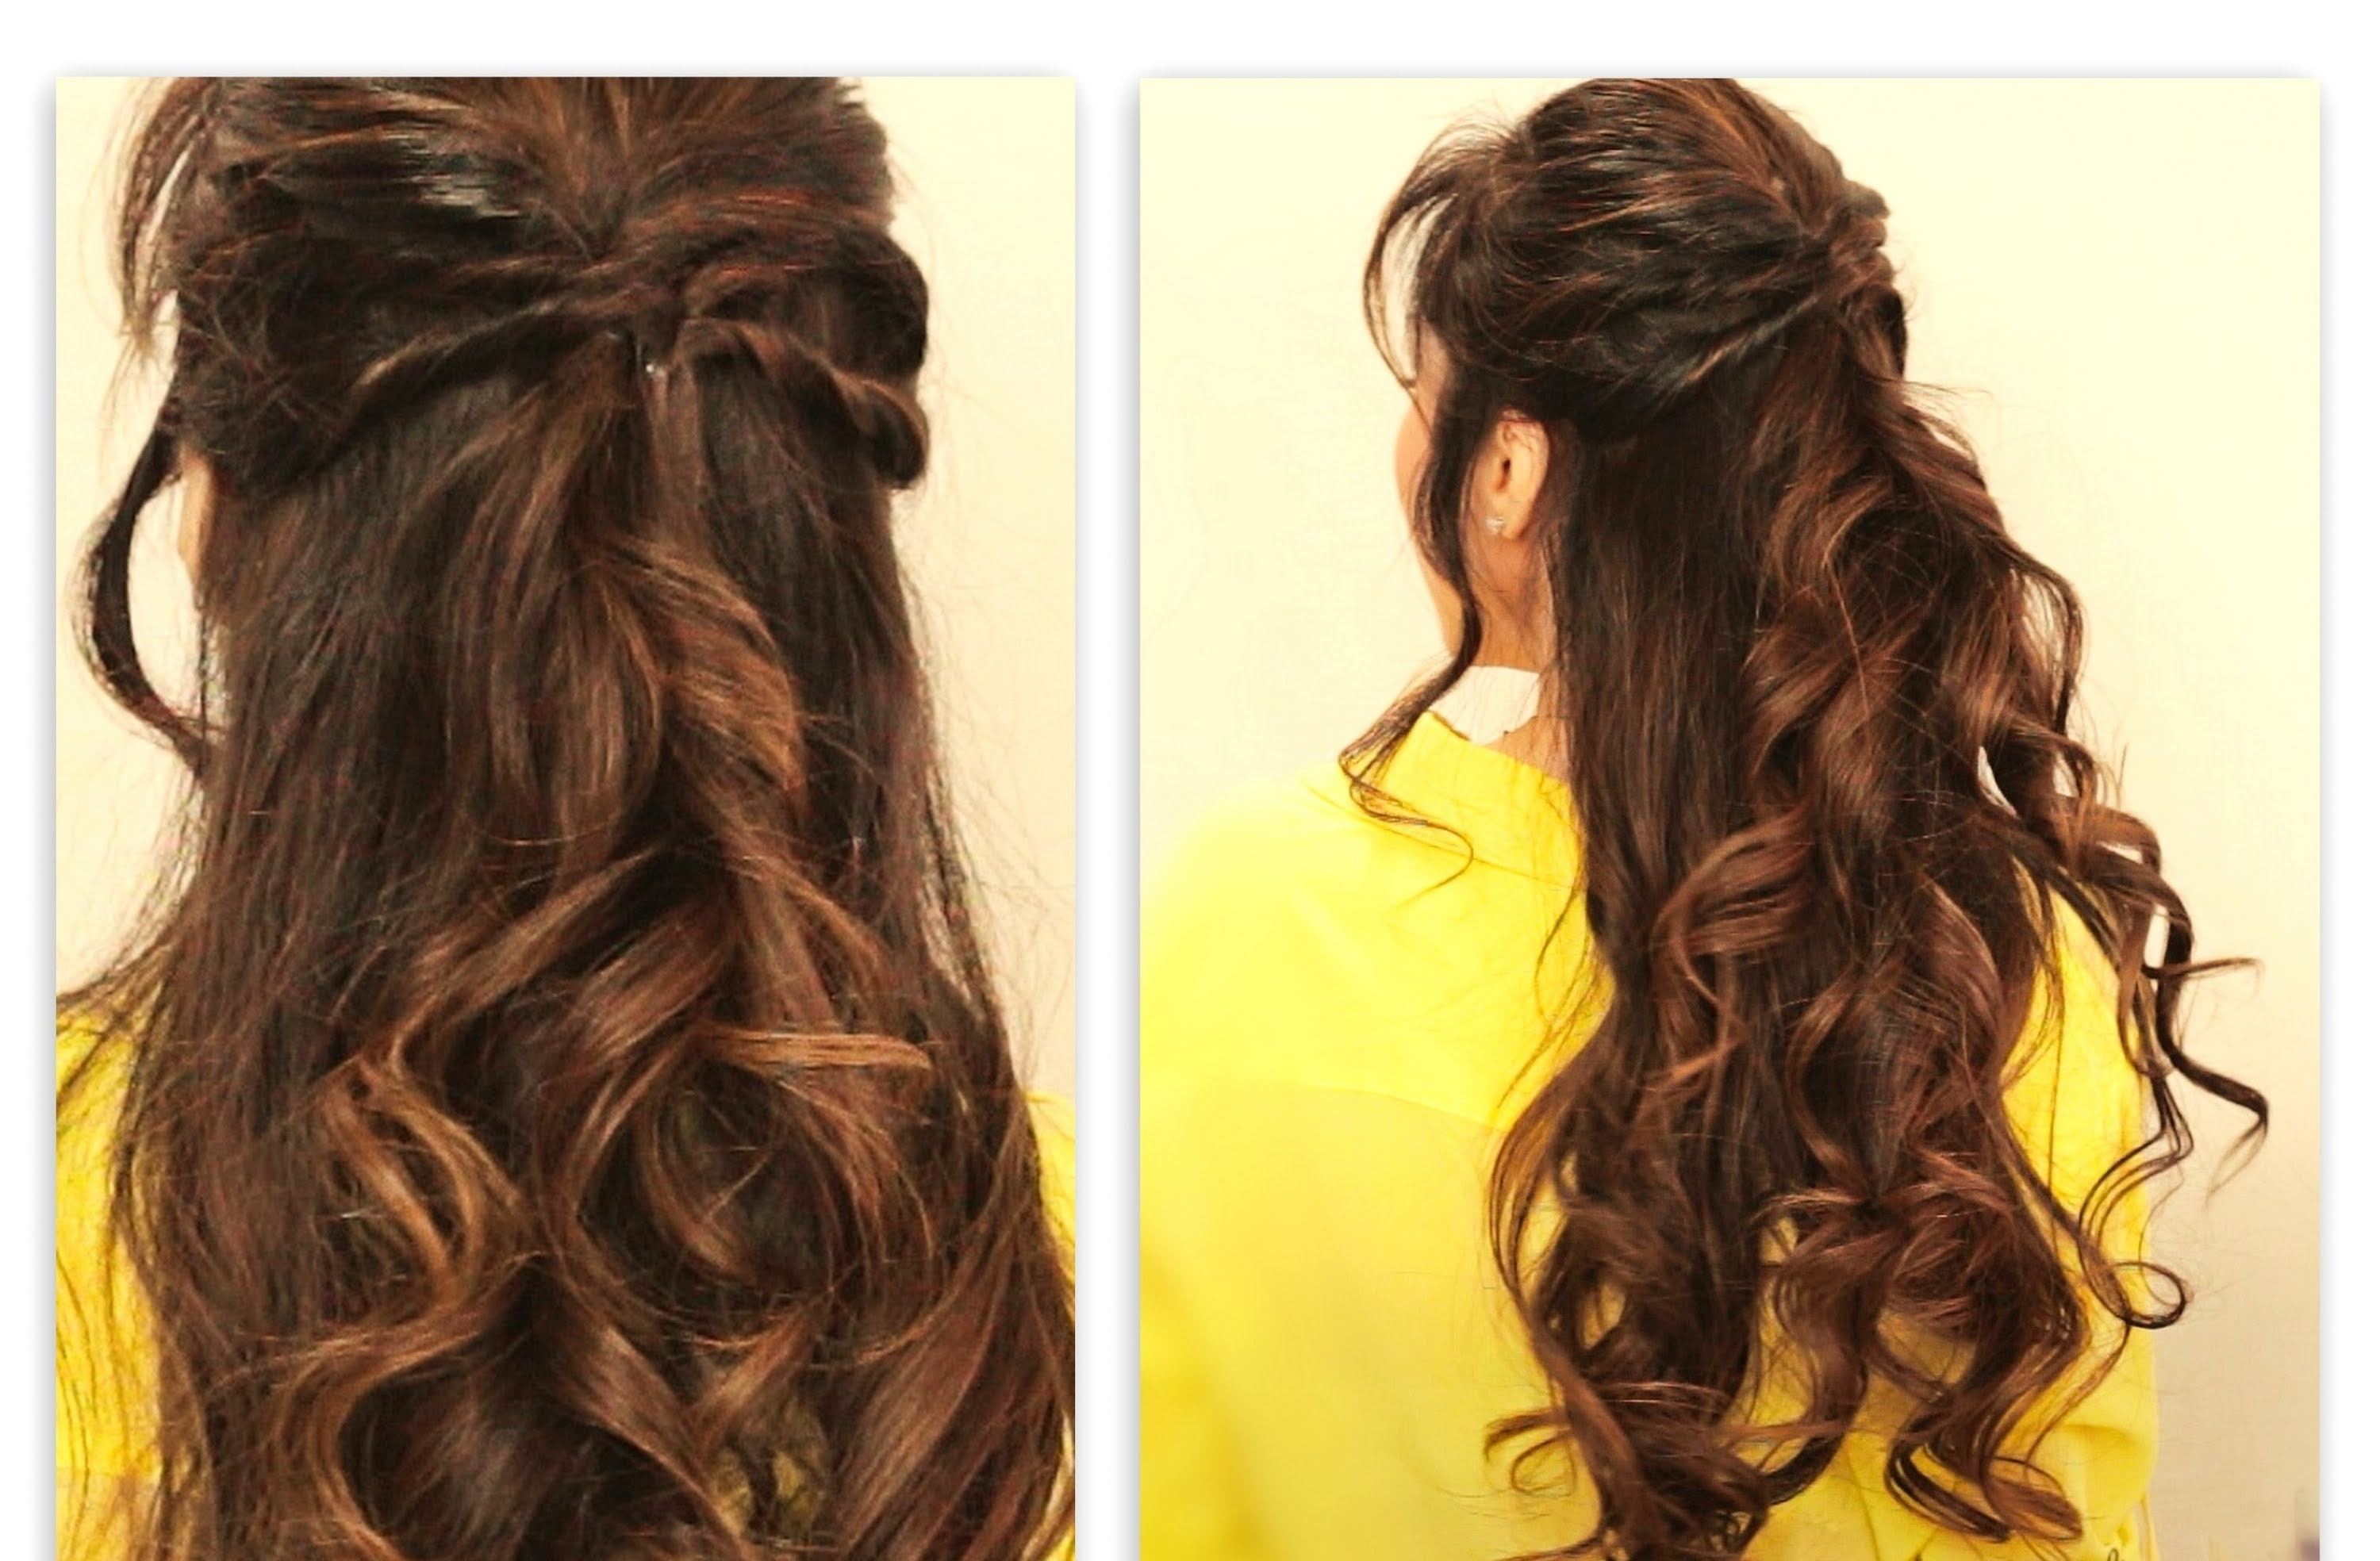 ☆ Cute Twisted Flip Half Up Half Down Fall Hairstyles For Medium Within Updo Half Up Half Down Hairstyles (View 1 of 15)